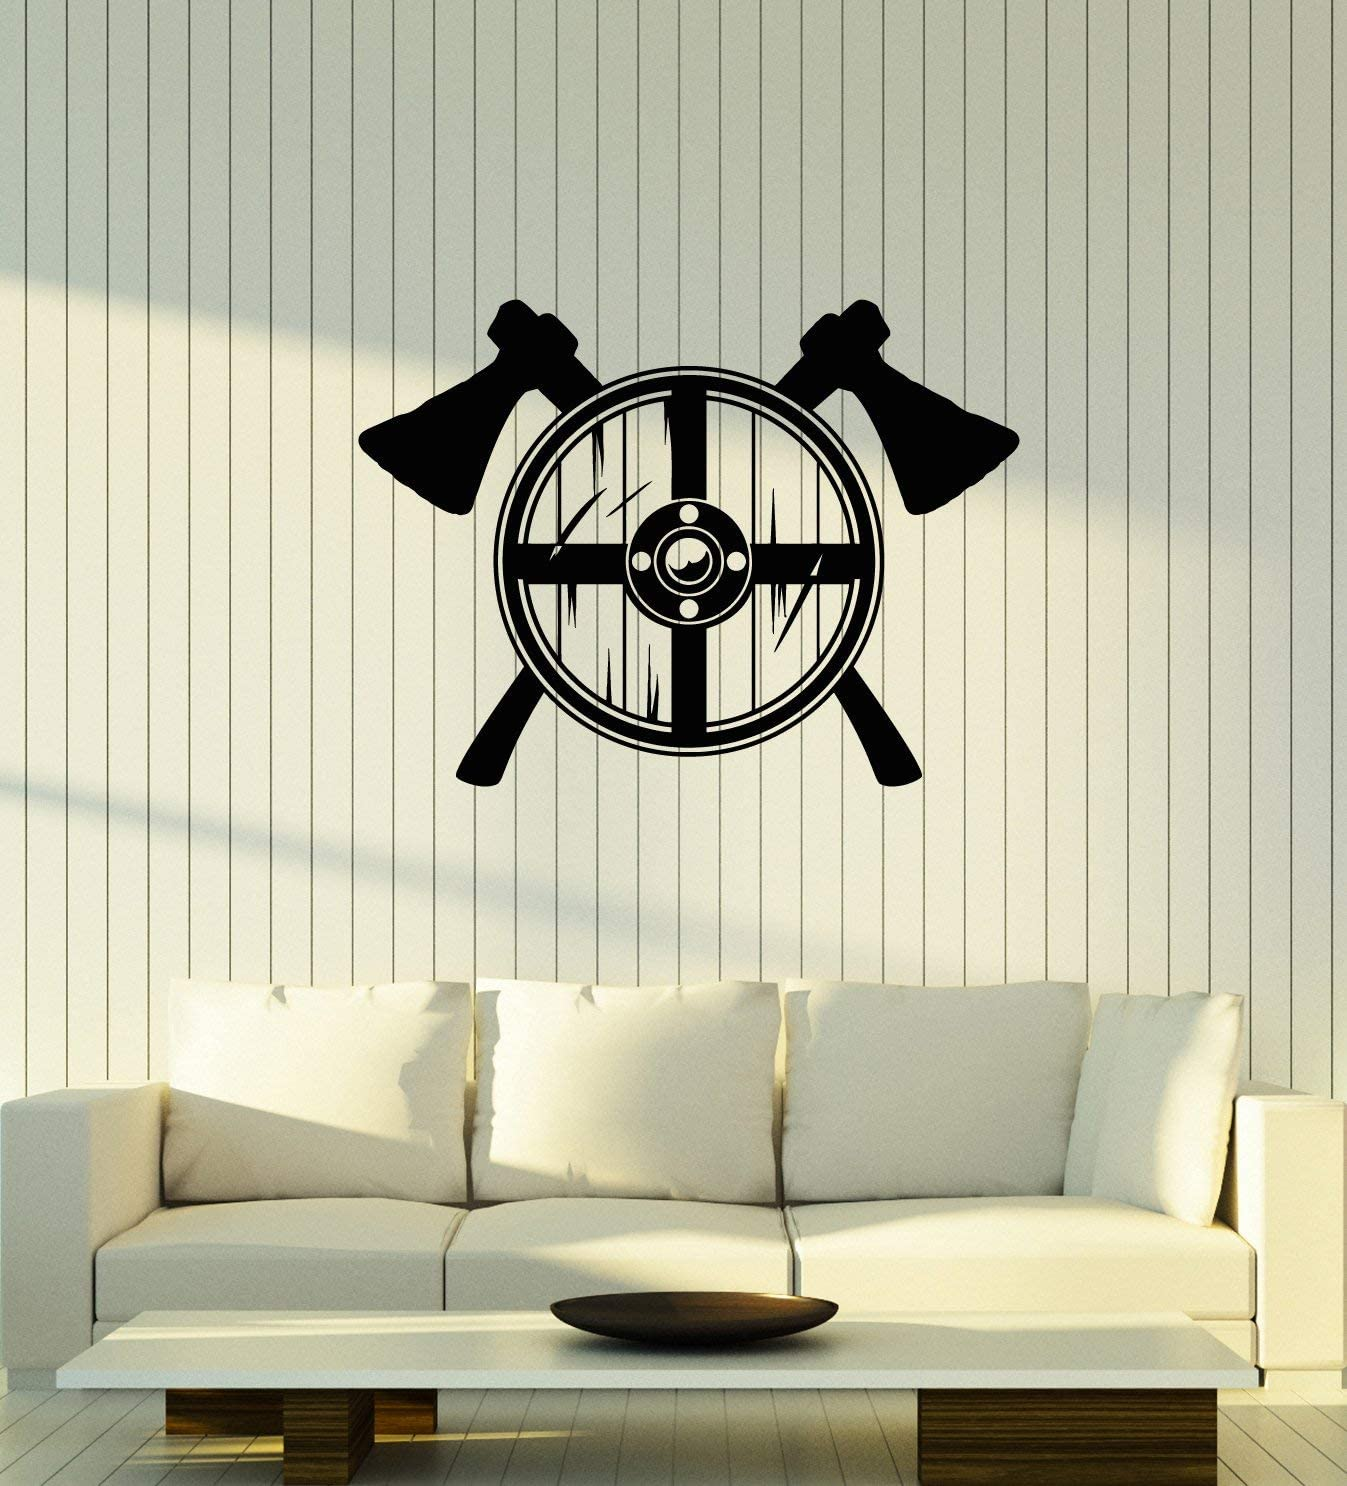 Vinyl Wall Decal Viking Shield Axes Warrior Man Cave Interior Stickers Mural Large Decor (ig5961) Black